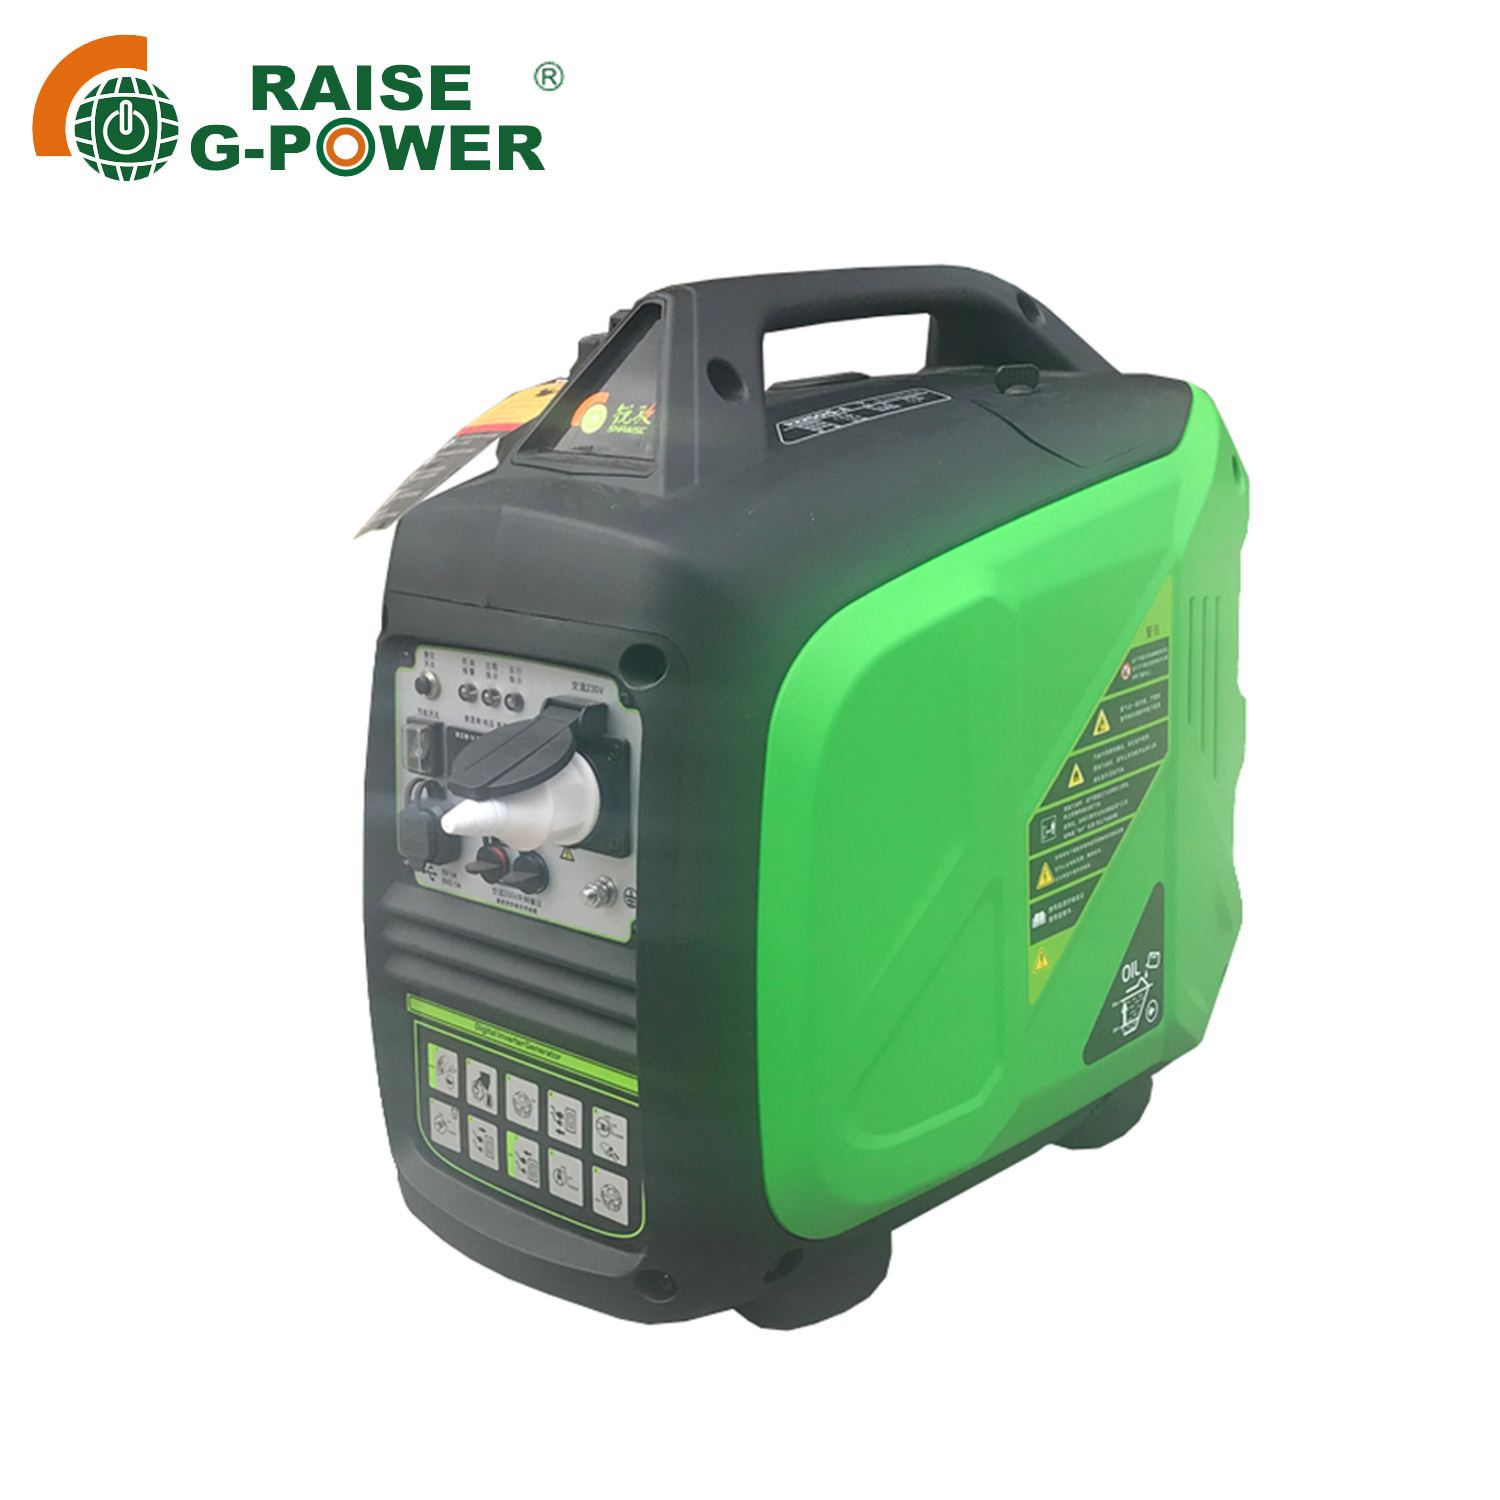 SHRAISE RZ2250IS Tragbare Super Effiziente 1800W Leiser Inverter Benzin Stille Generator Für Camp